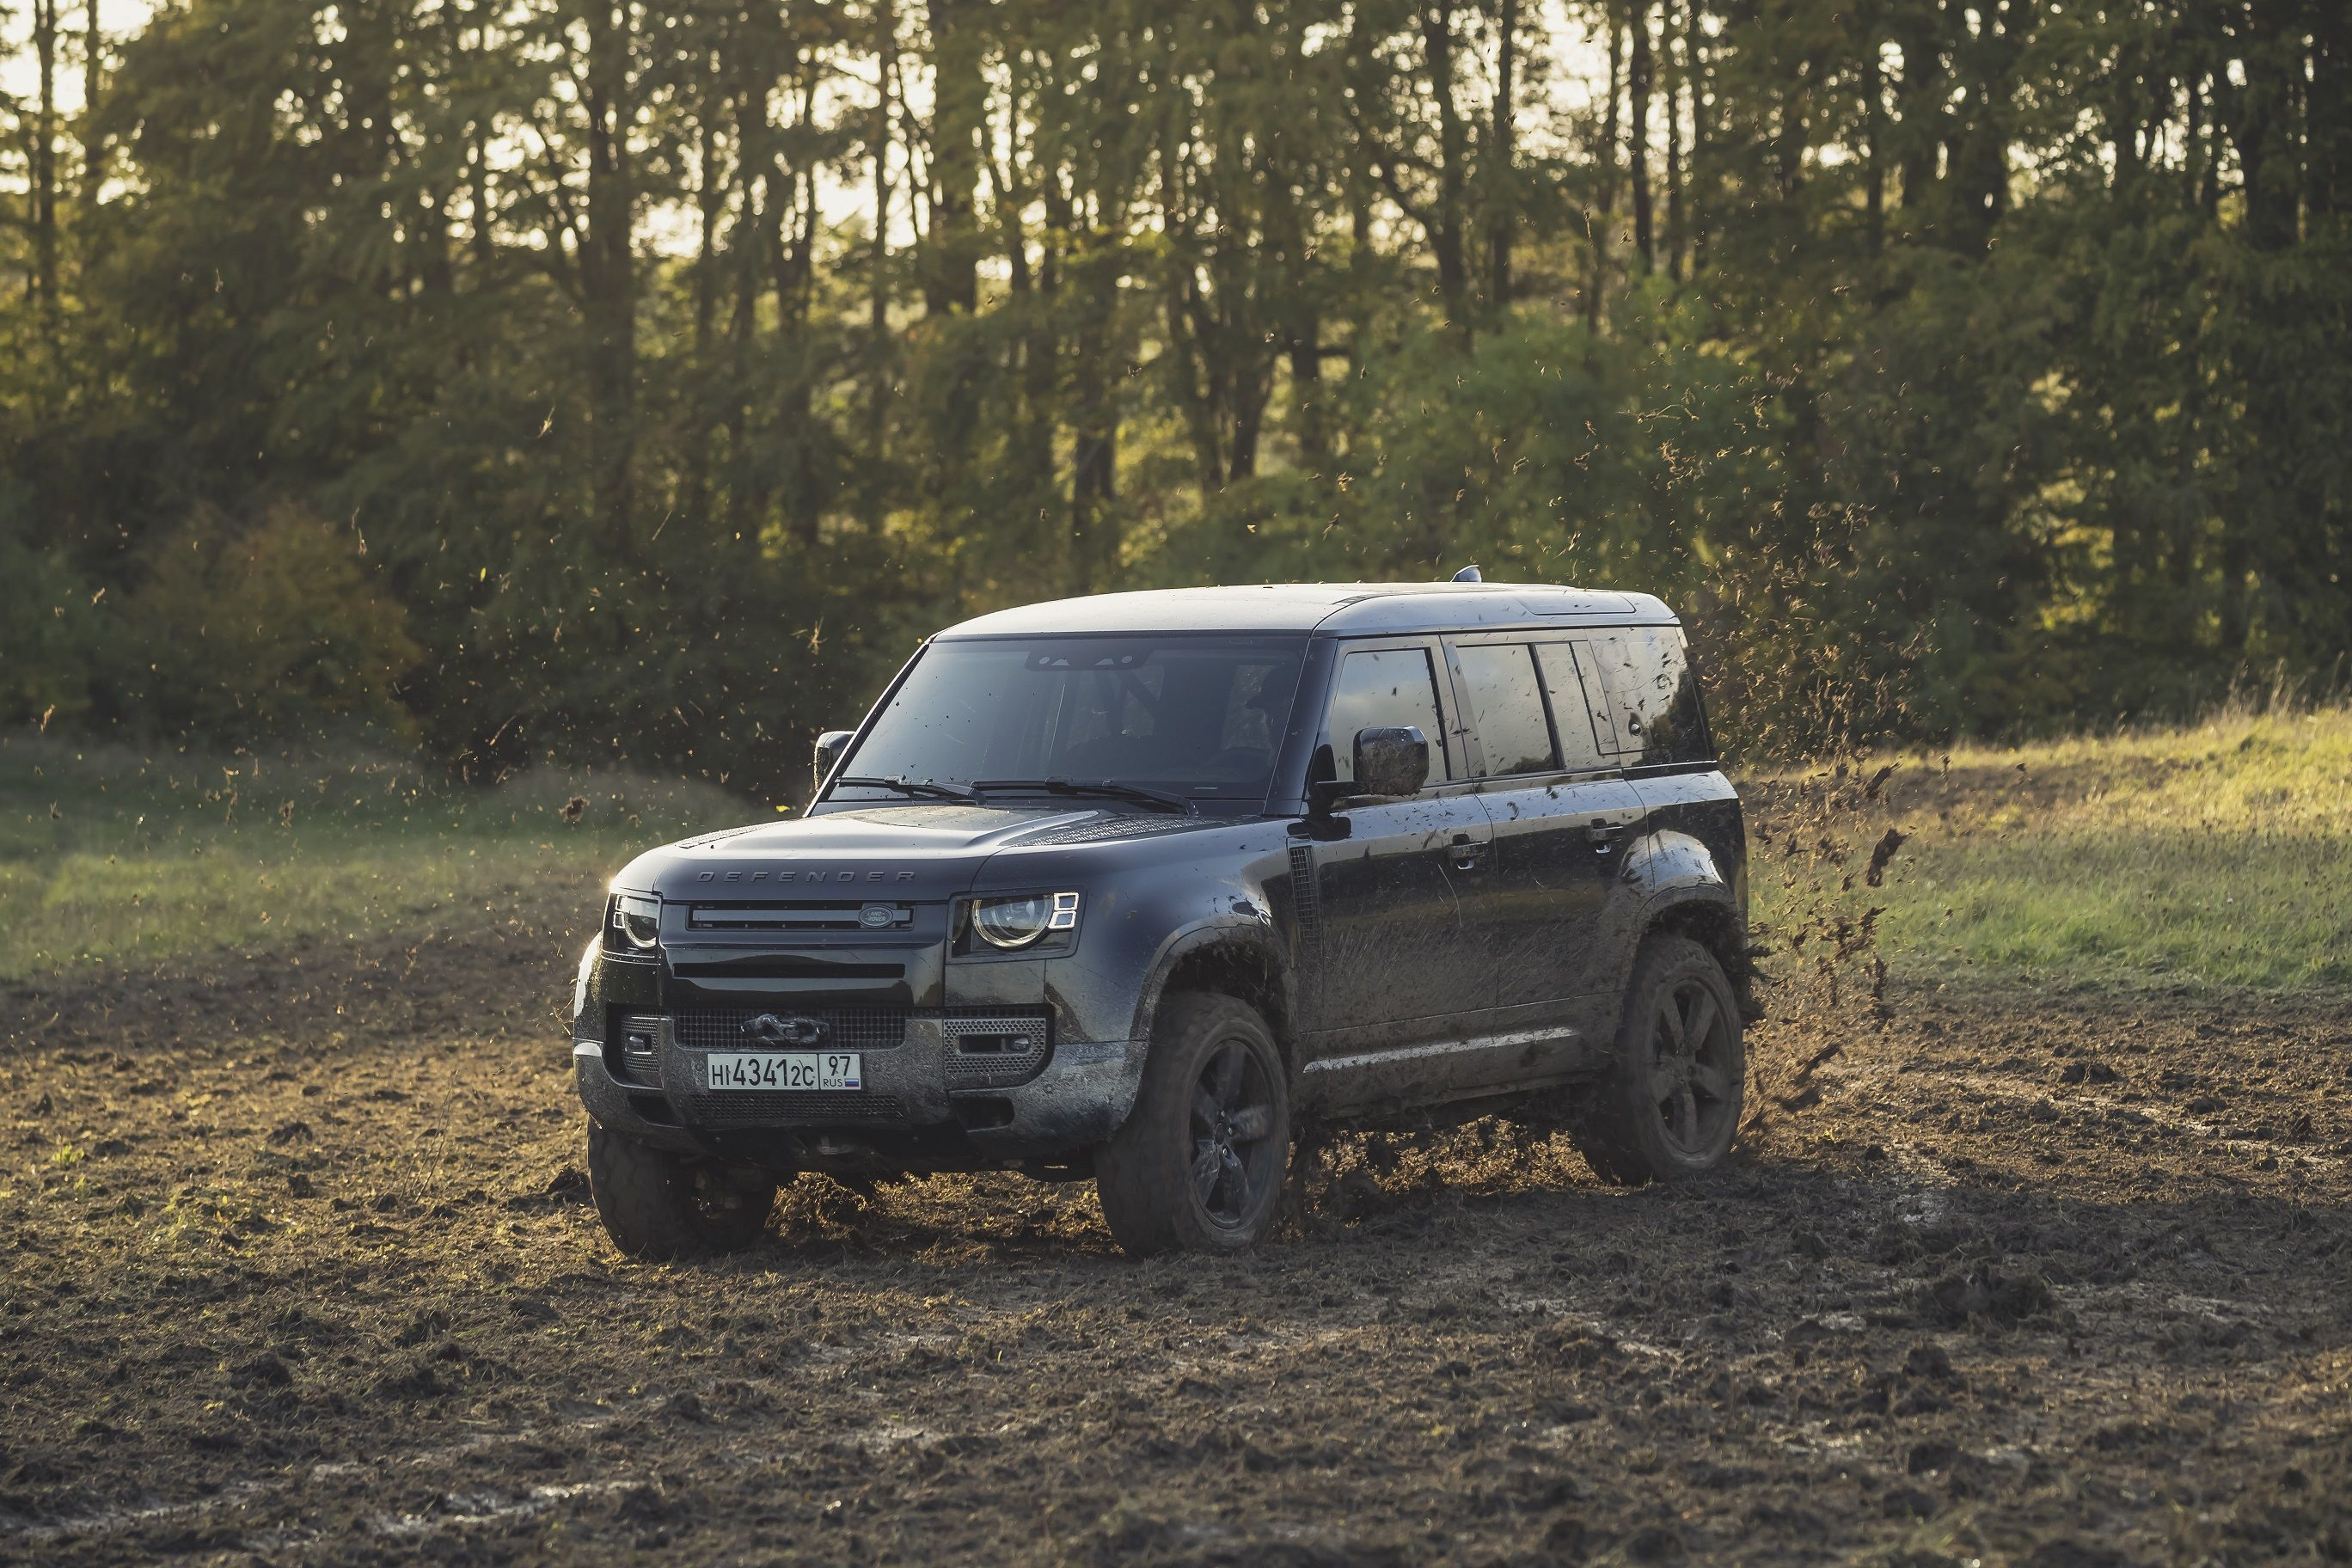 The next edition of the James Bond series is scheduled for an April 2020 release. While die-hard 007 fans can't keep calm, auto enthusiasts too have been hunting for scoops on all the stunt vehicles being used. The hunt ends here. It's the new Land Rover Defender.